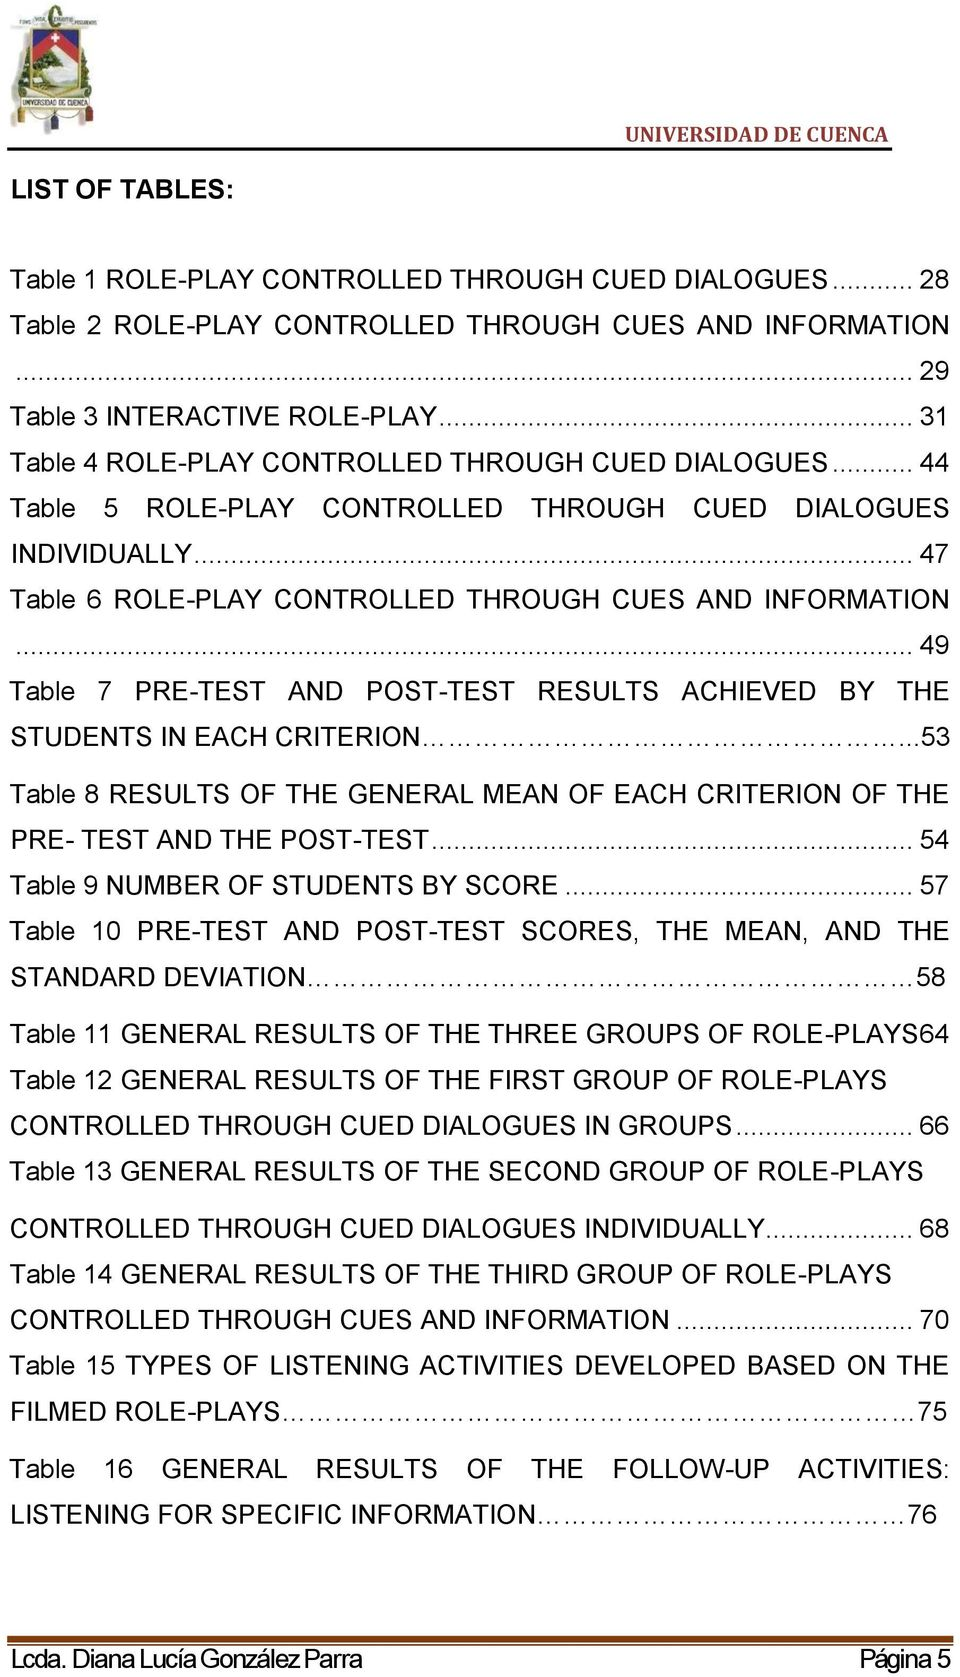 .. 49 Table 7 PRE-TEST AND POST-TEST RESULTS ACHIEVED BY THE STUDENTS IN EACH CRITERION...53 Table 8 RESULTS OF THE GENERAL MEAN OF EACH CRITERION OF THE PRE- TEST AND THE POST-TEST.